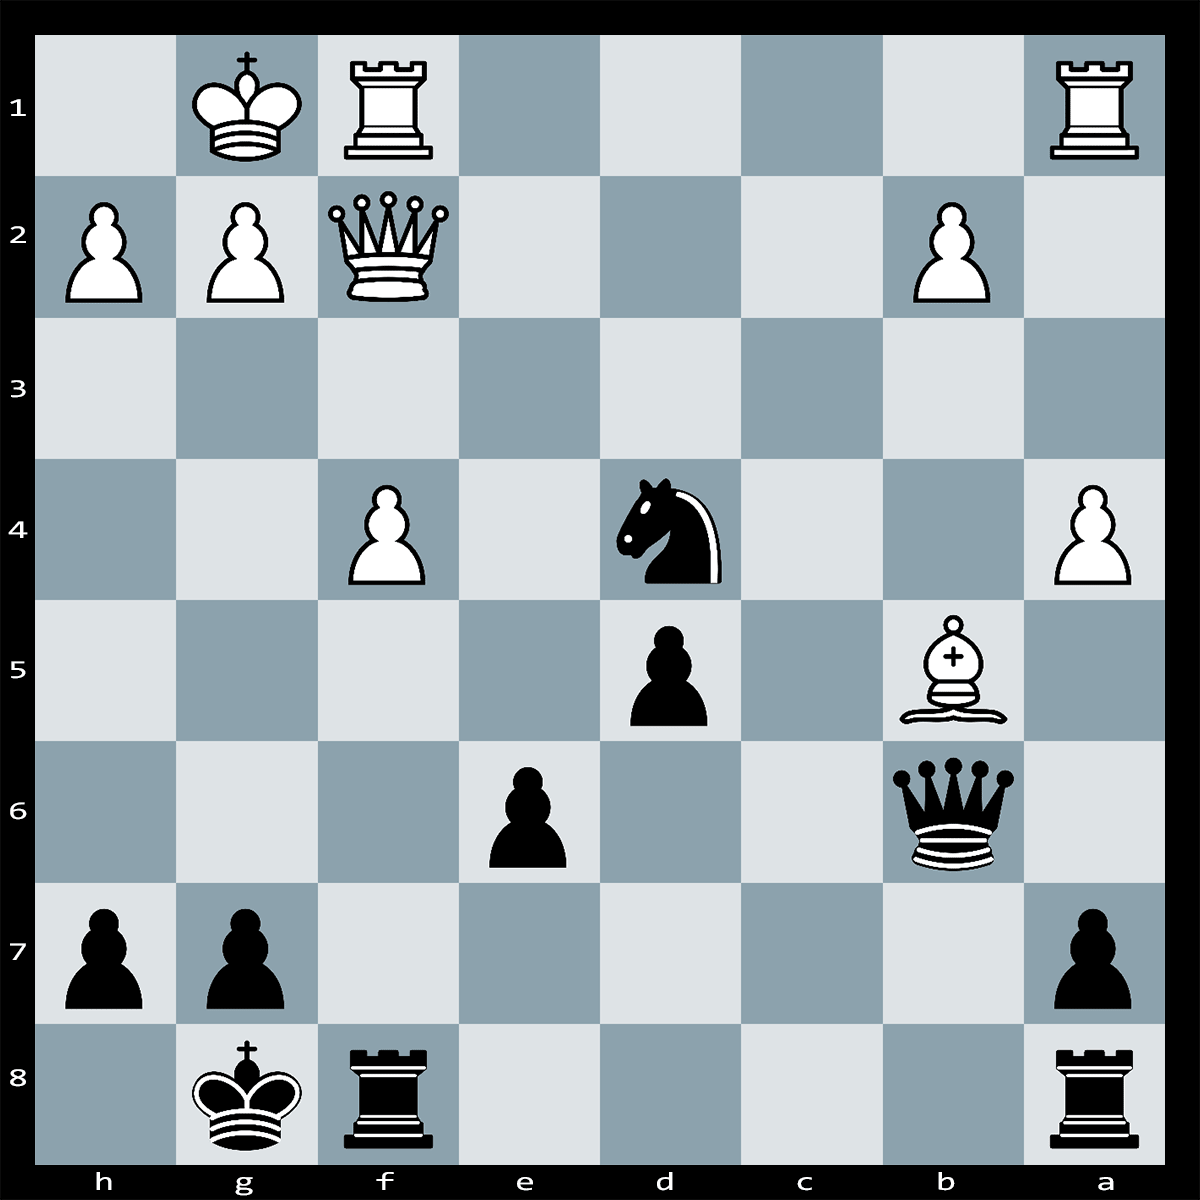 Find the Best Move Black to Play - Chess Puzzle #10